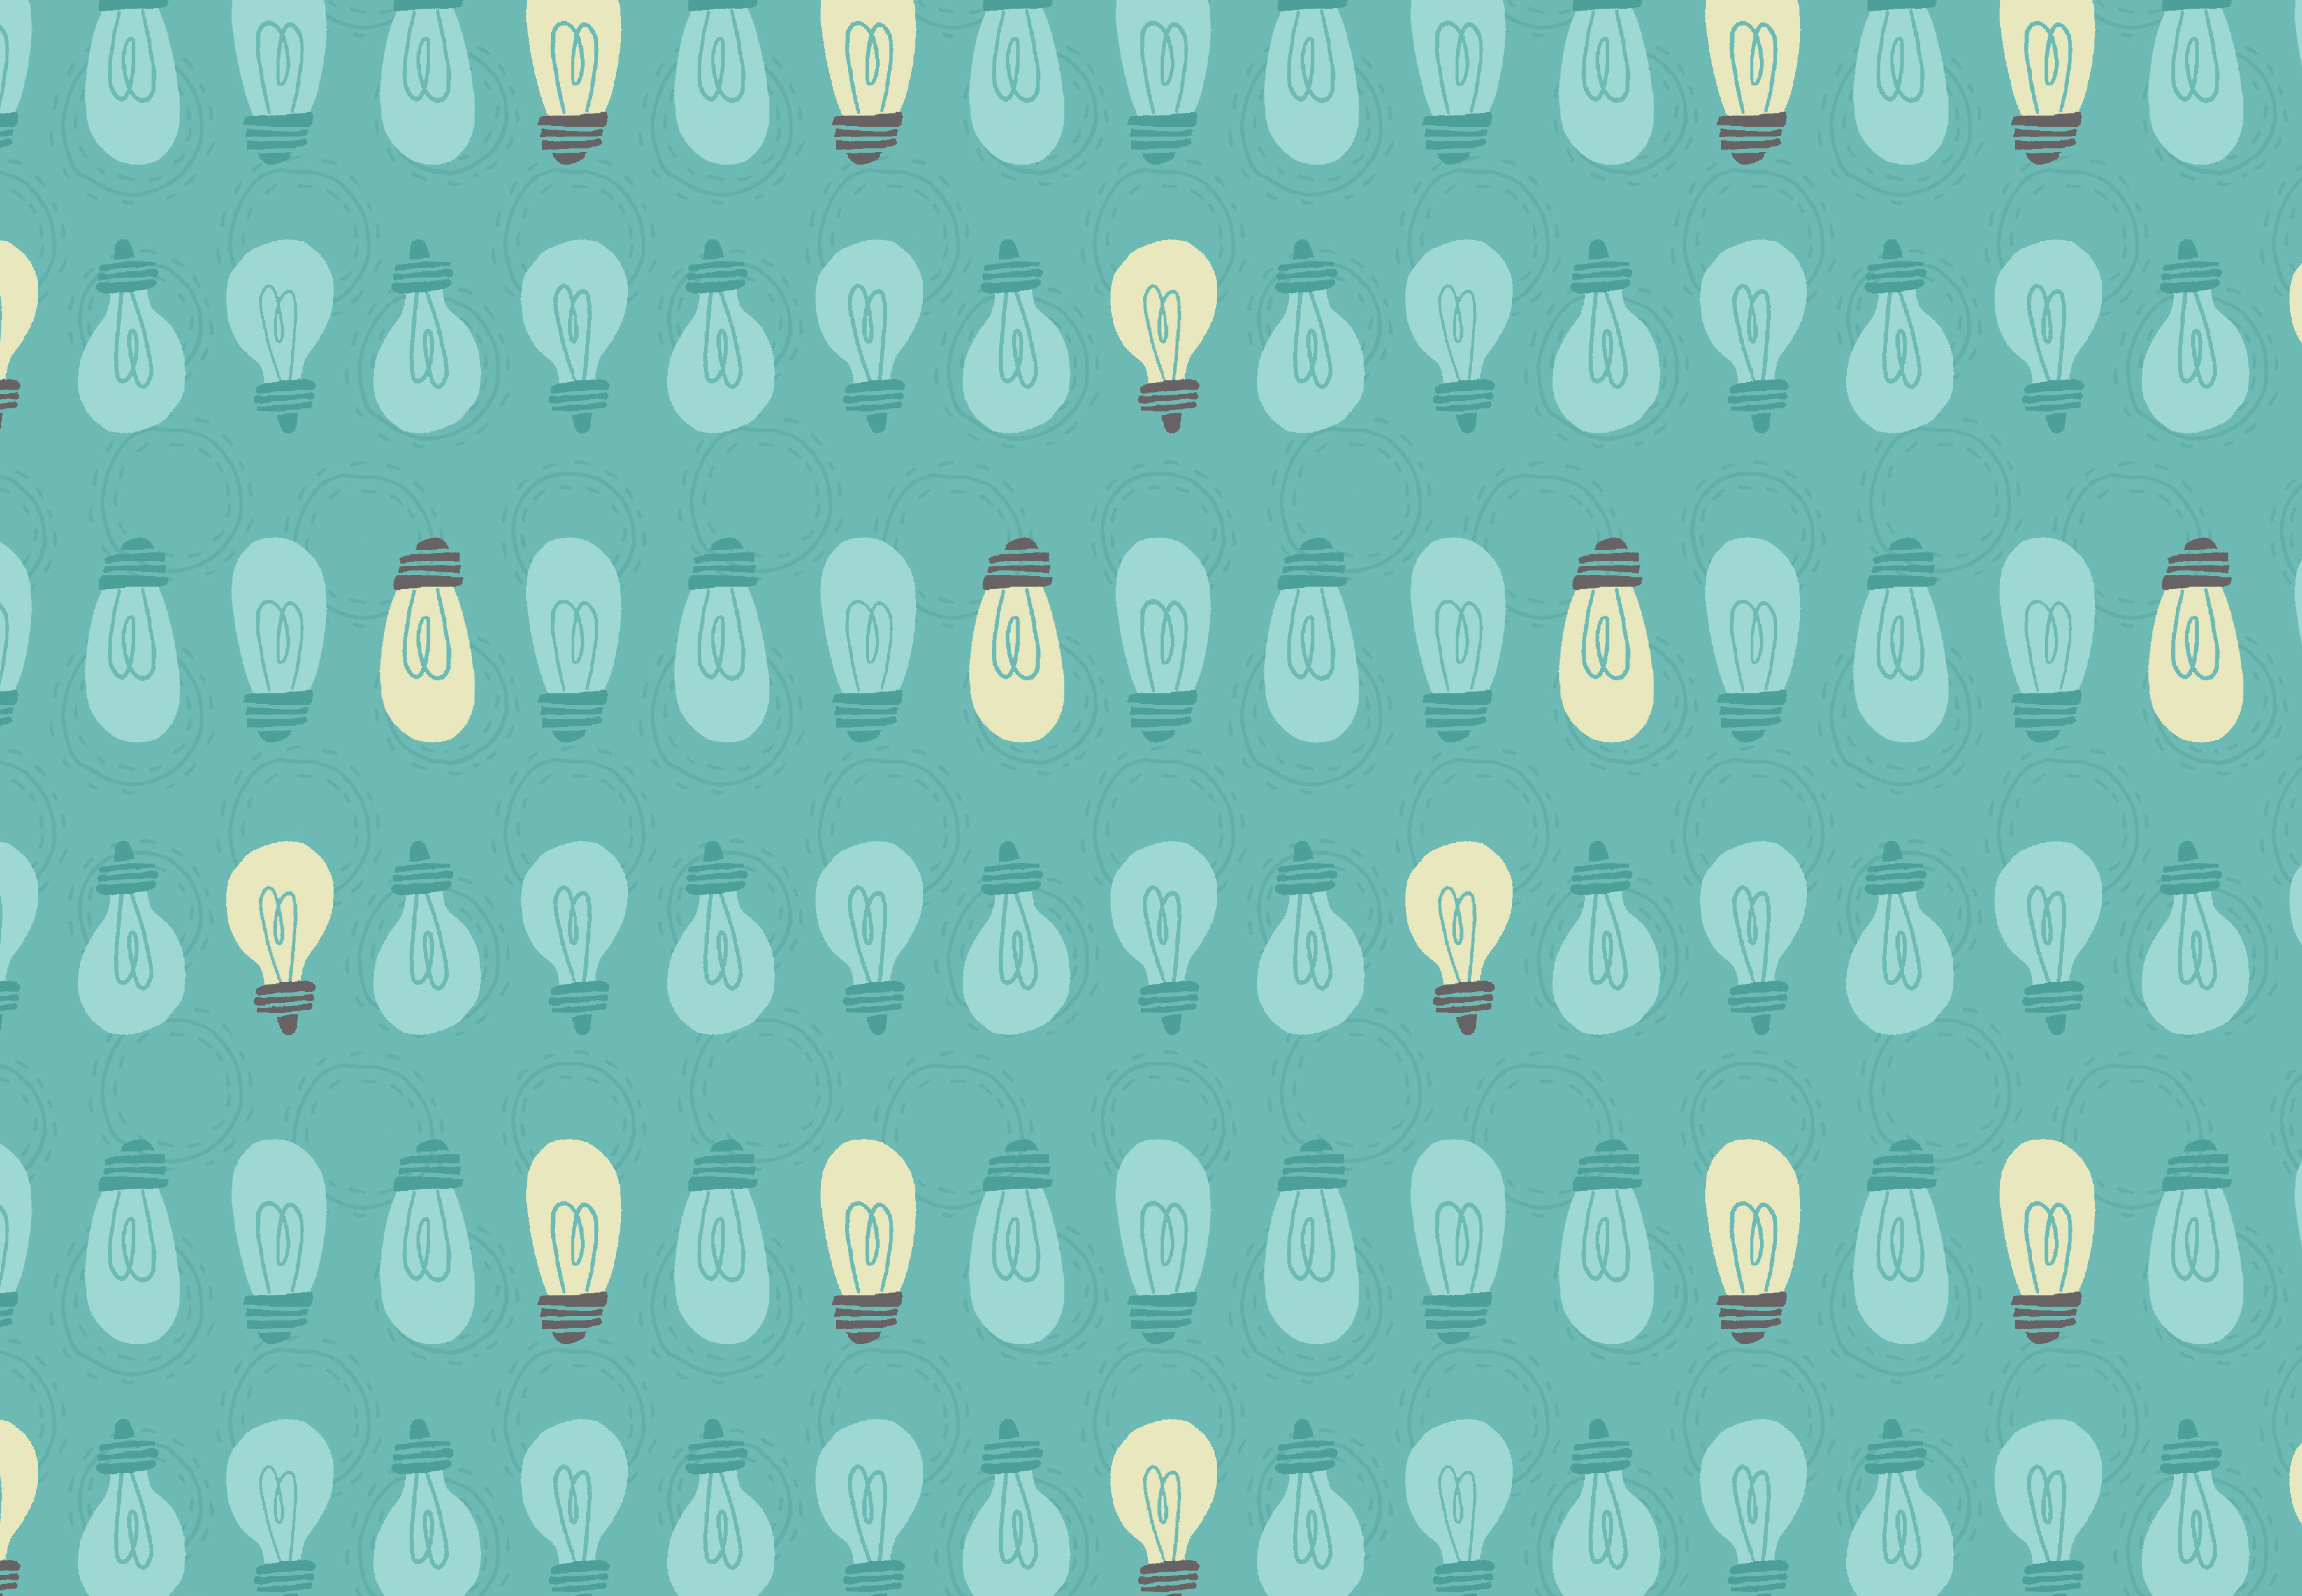 Android wallpaper fun with patterns lightbulbs by small talk localoffer android wallpaper voltagebd Choice Image